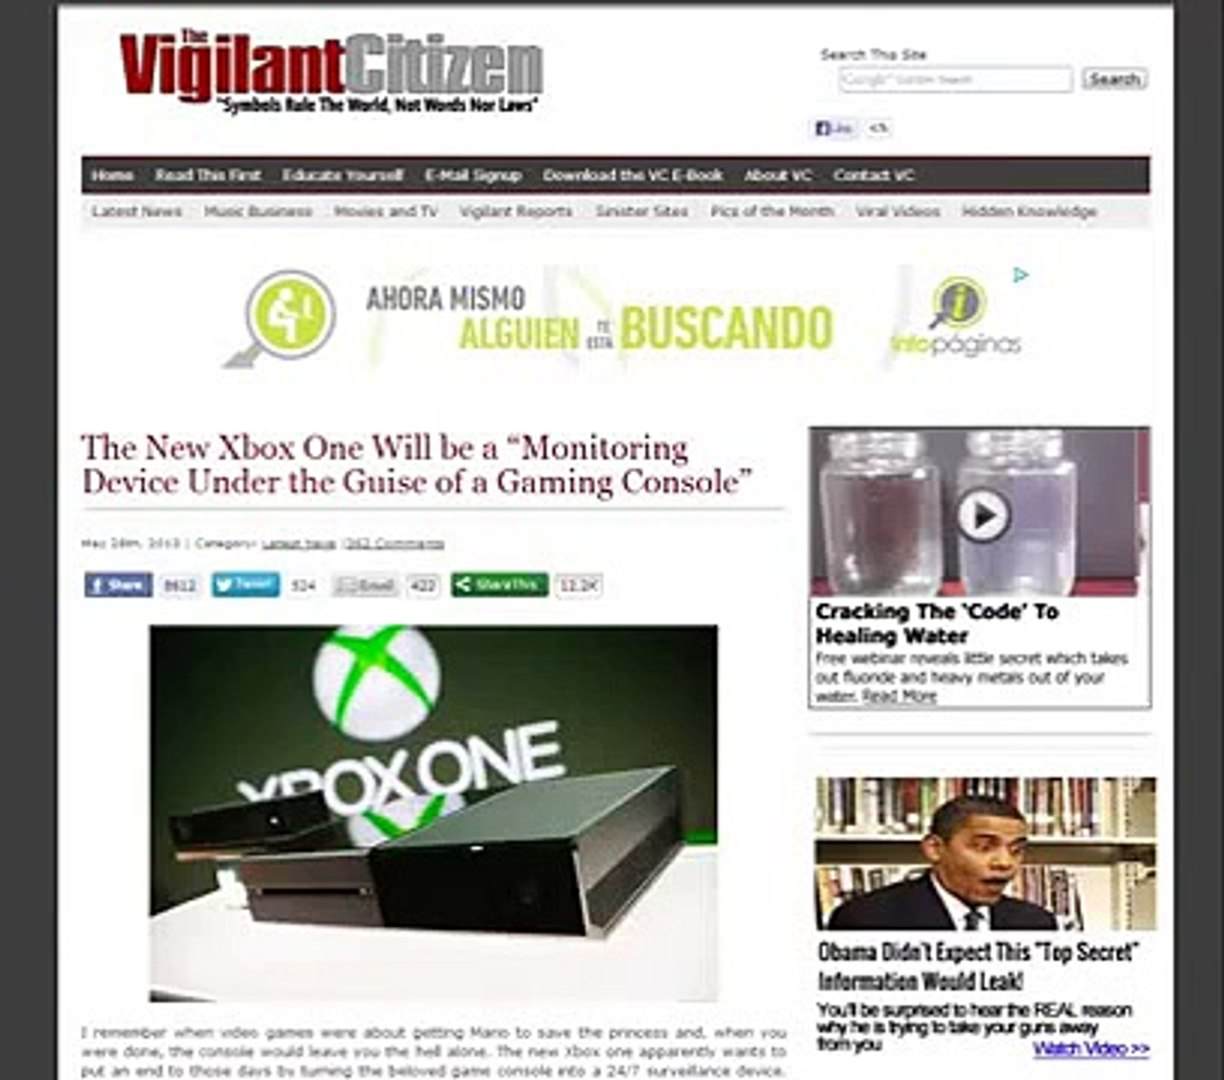 Xbox One And It's Relations With The Illuminati (BIG BROTHER)